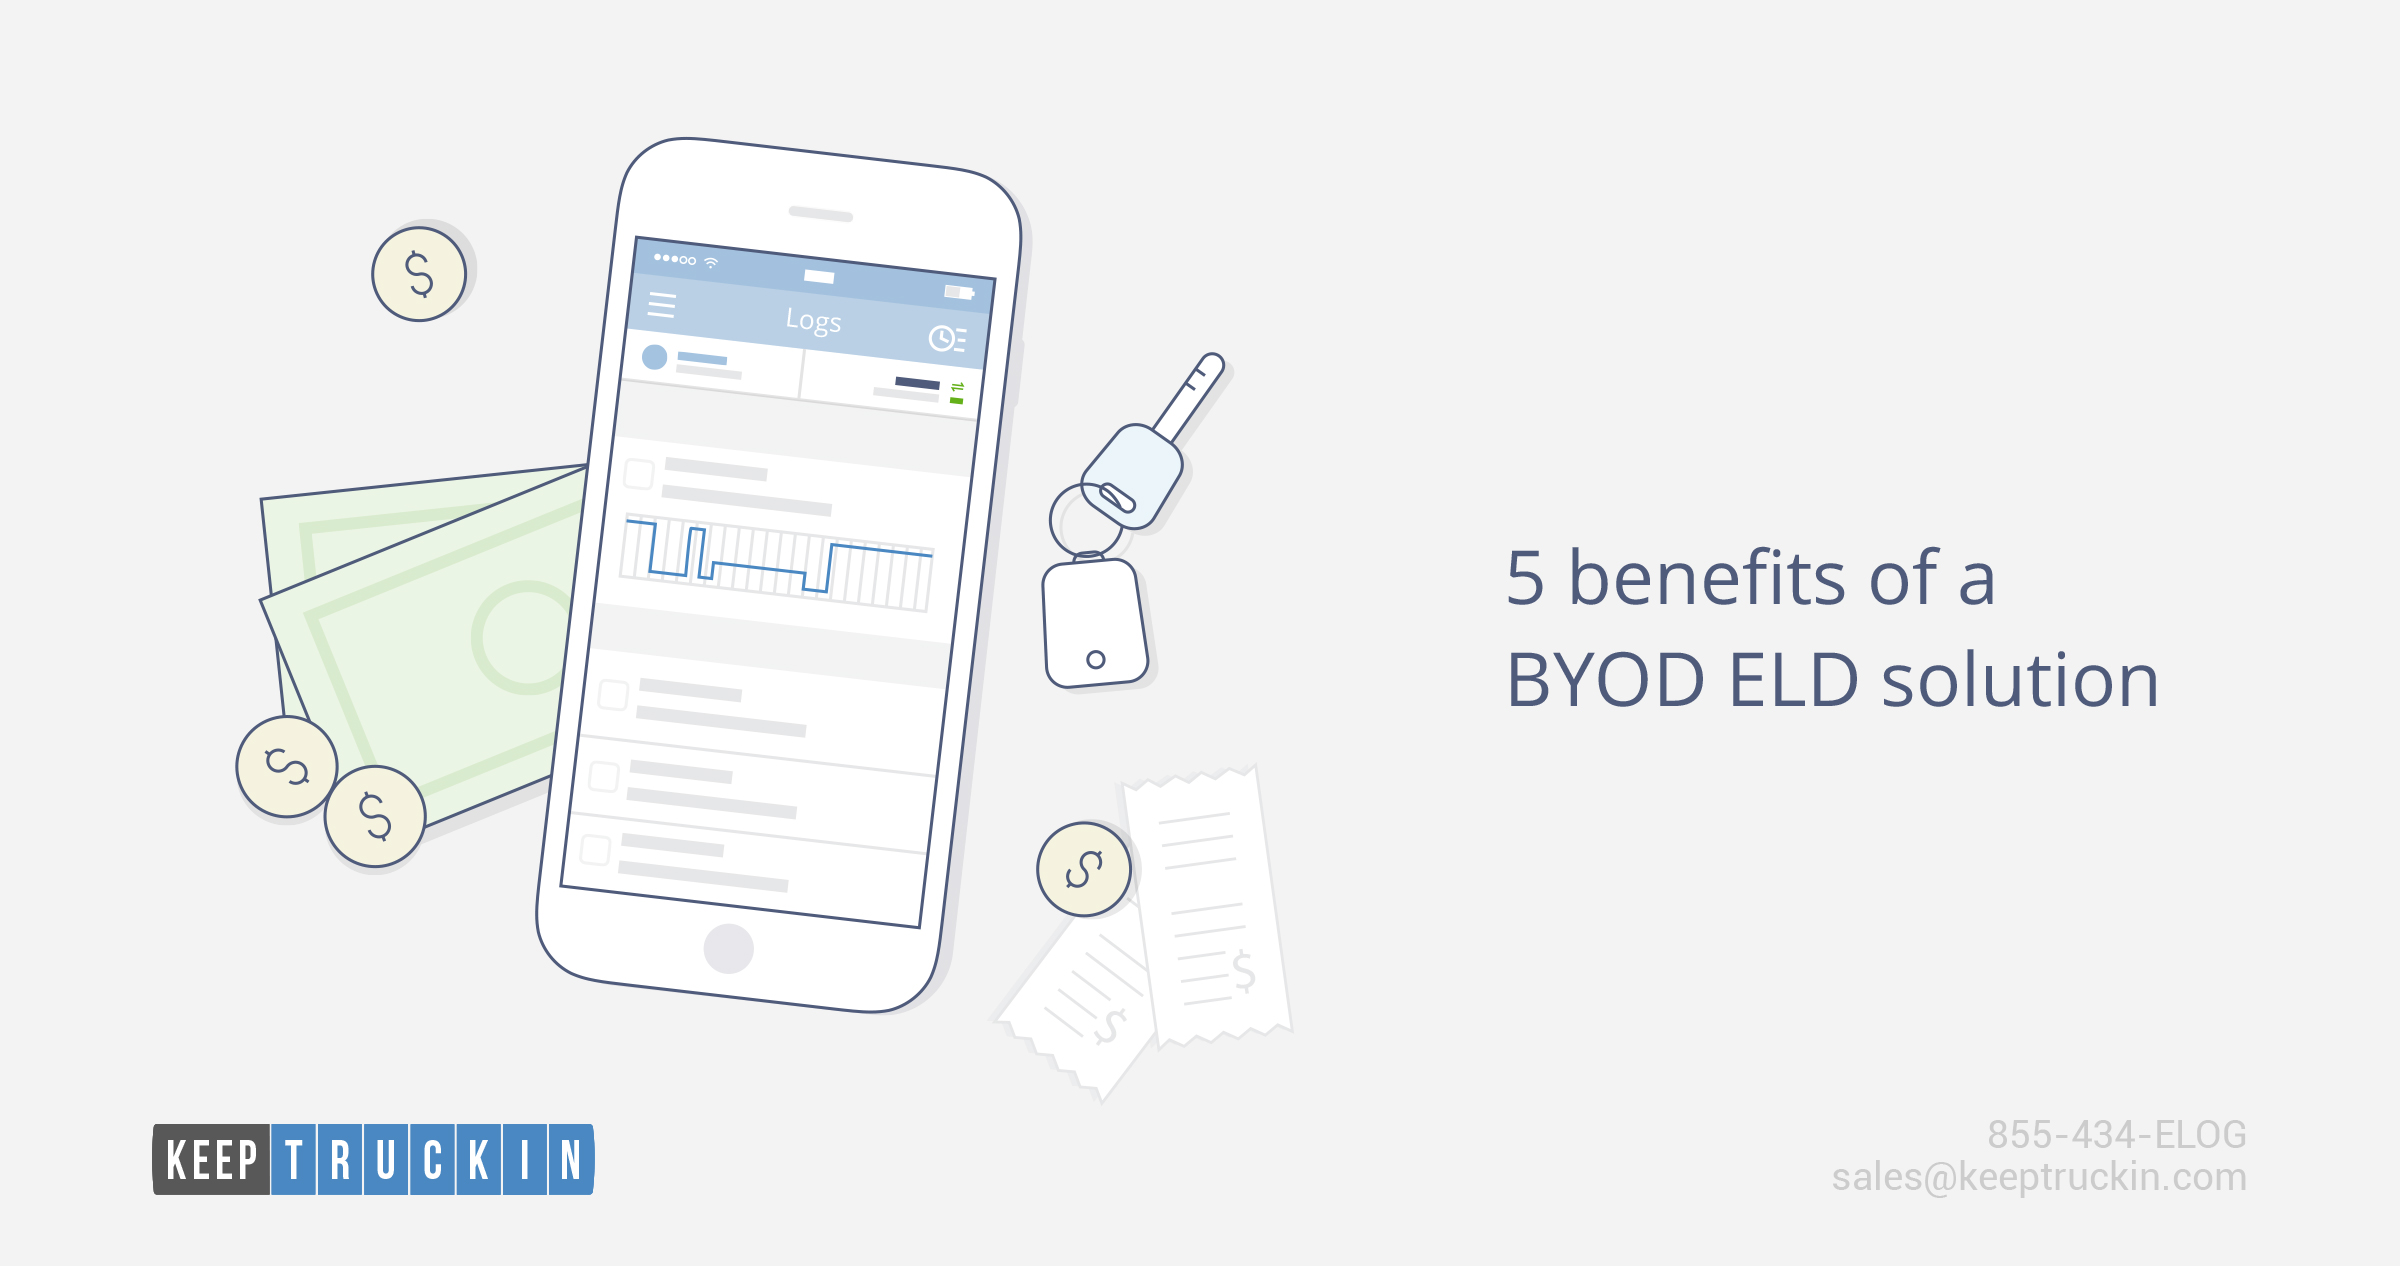 5 benefits of a BYOD ELD solution